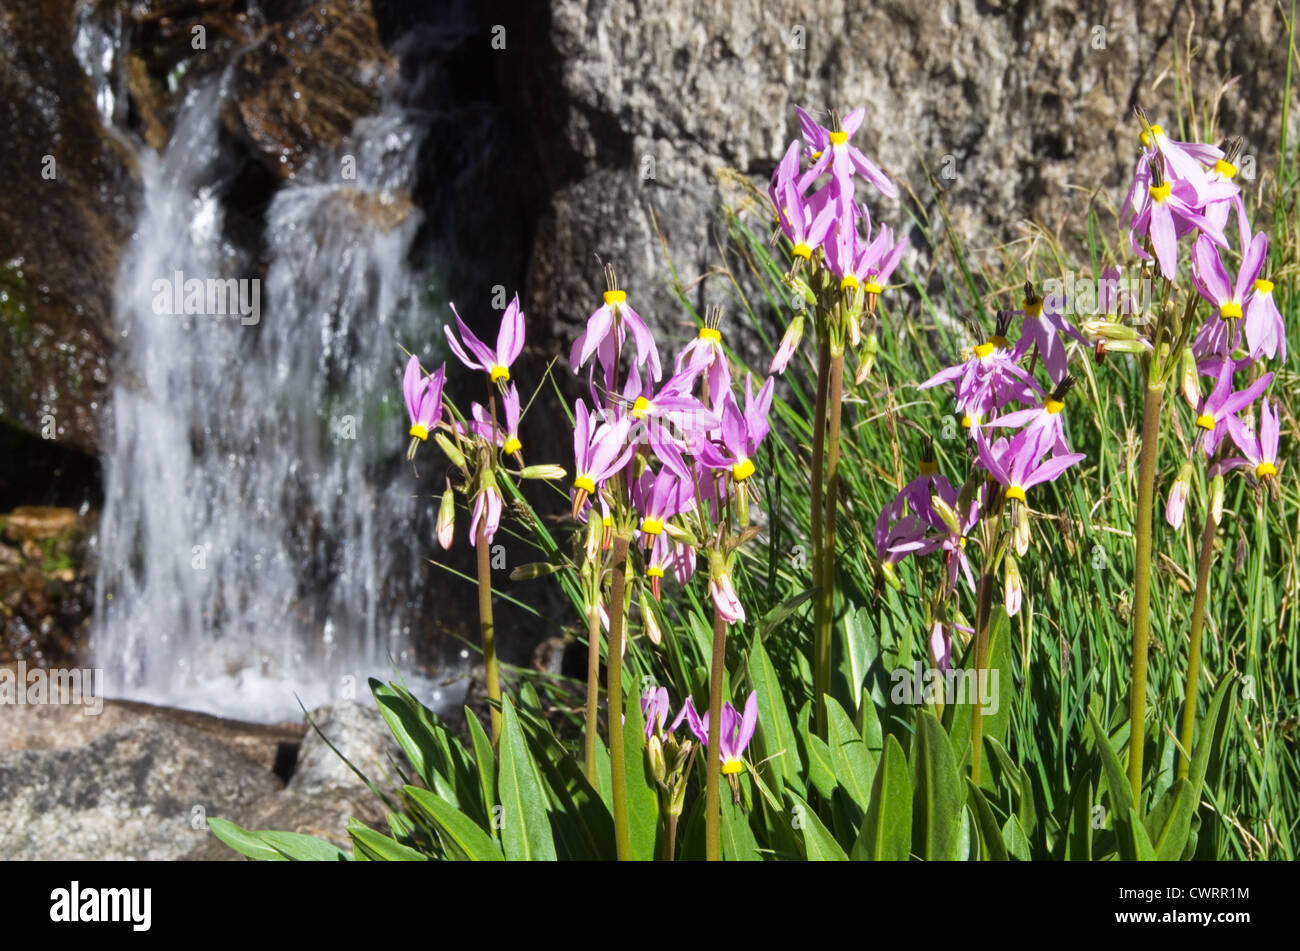 sierra shooting star flowers grow near a small waterfall in the Sierra Nevada mountains of California - Stock Image